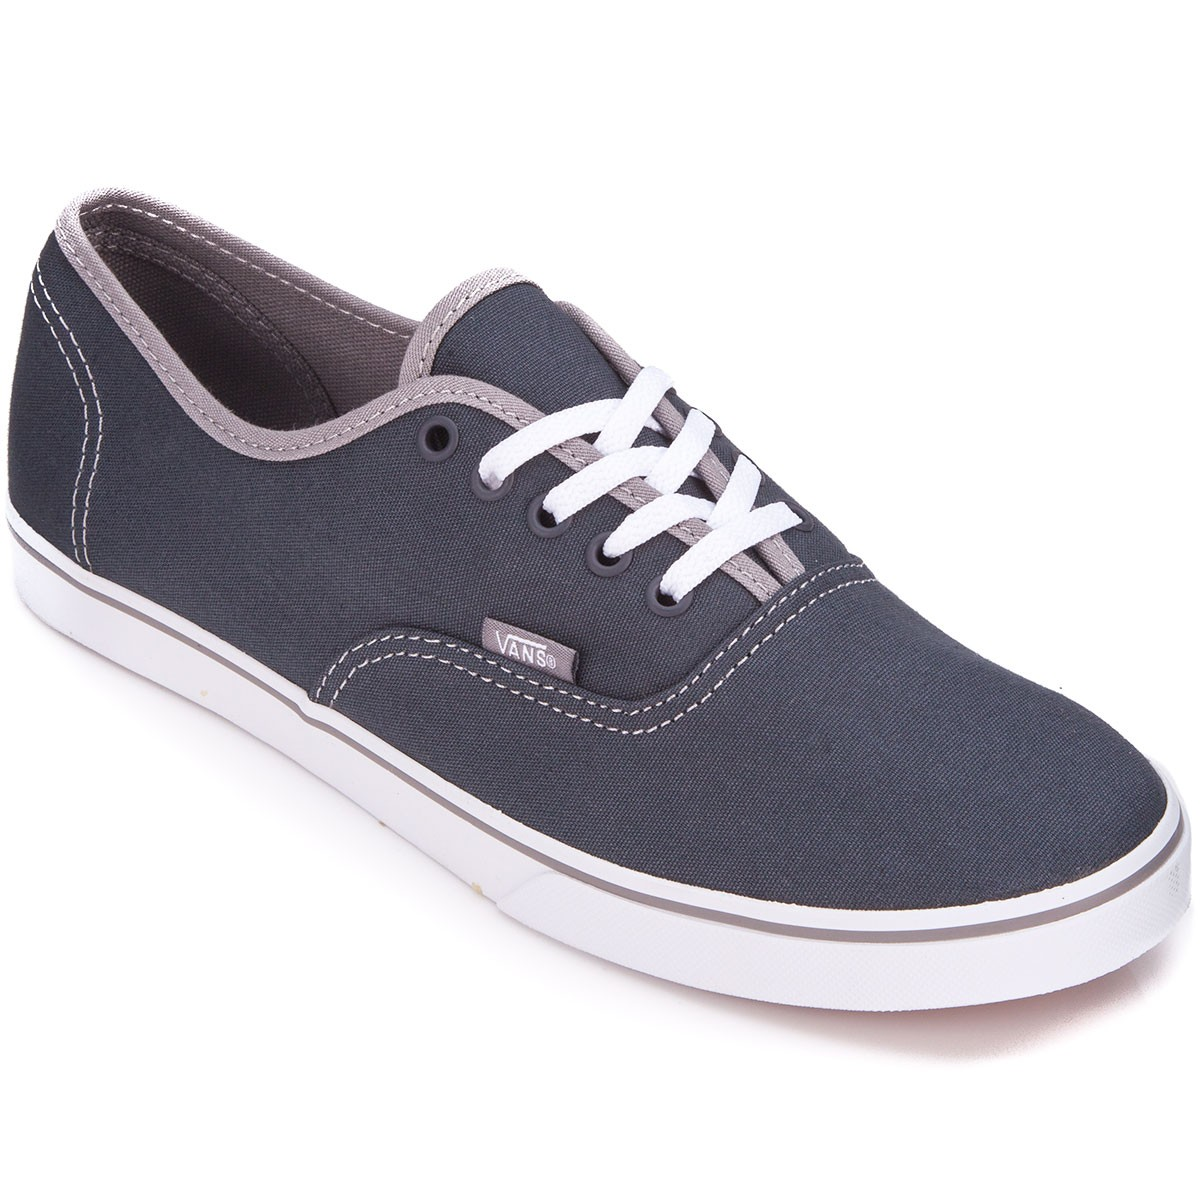 Vans Authentic Lo Pro Womens Shoes - Pop Ebony/Frost Grey - 5.0